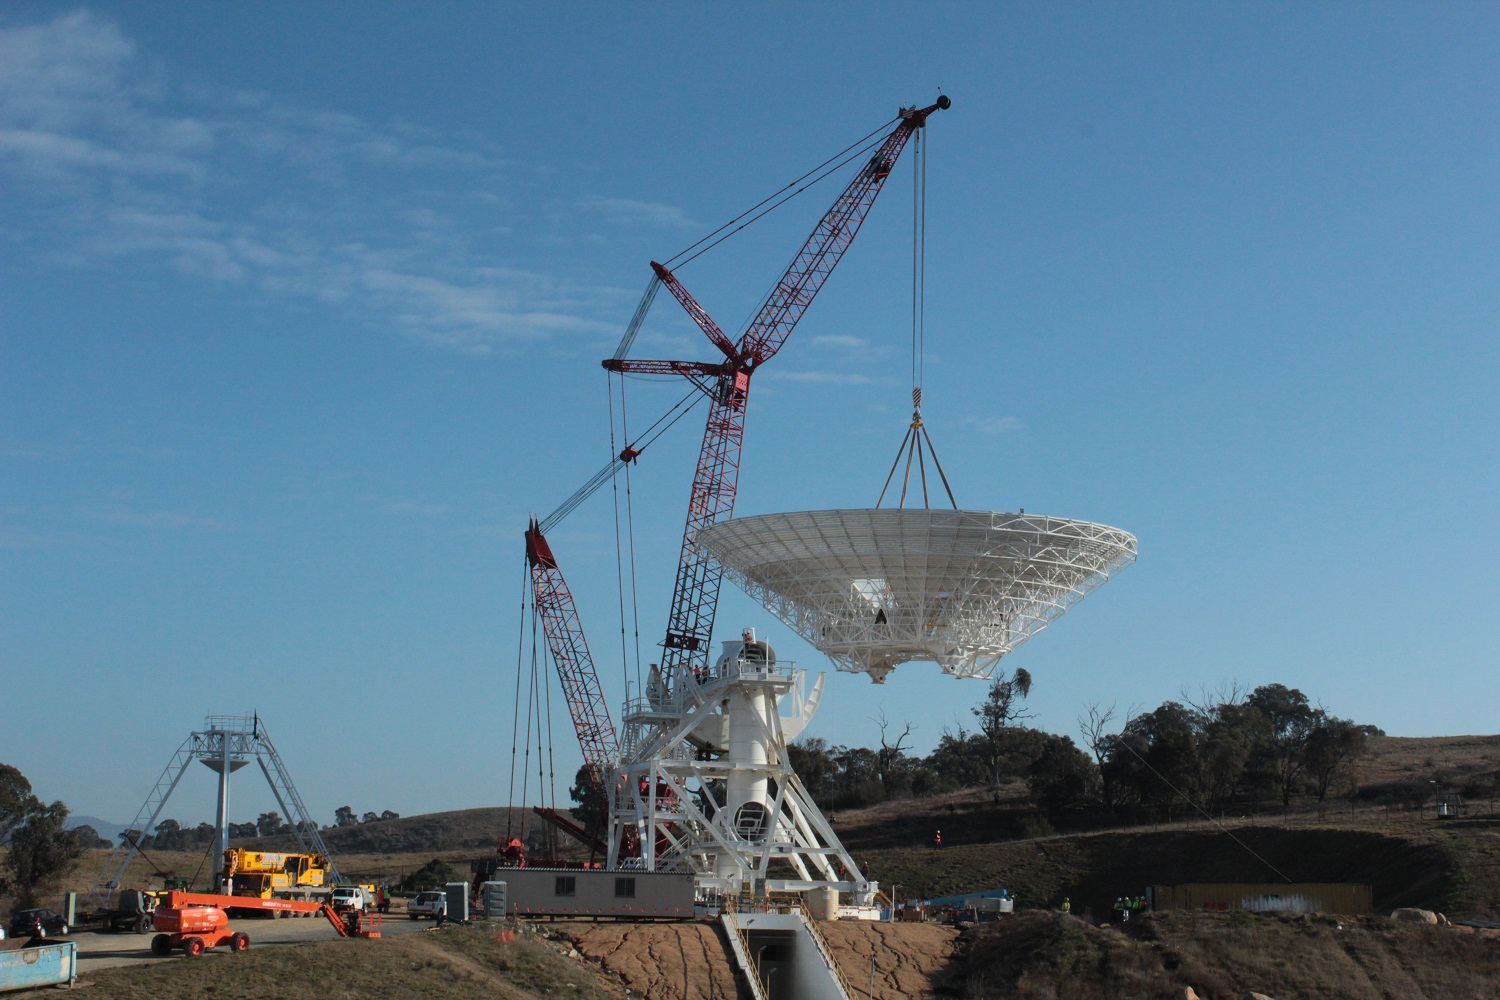 The new dish being installed.